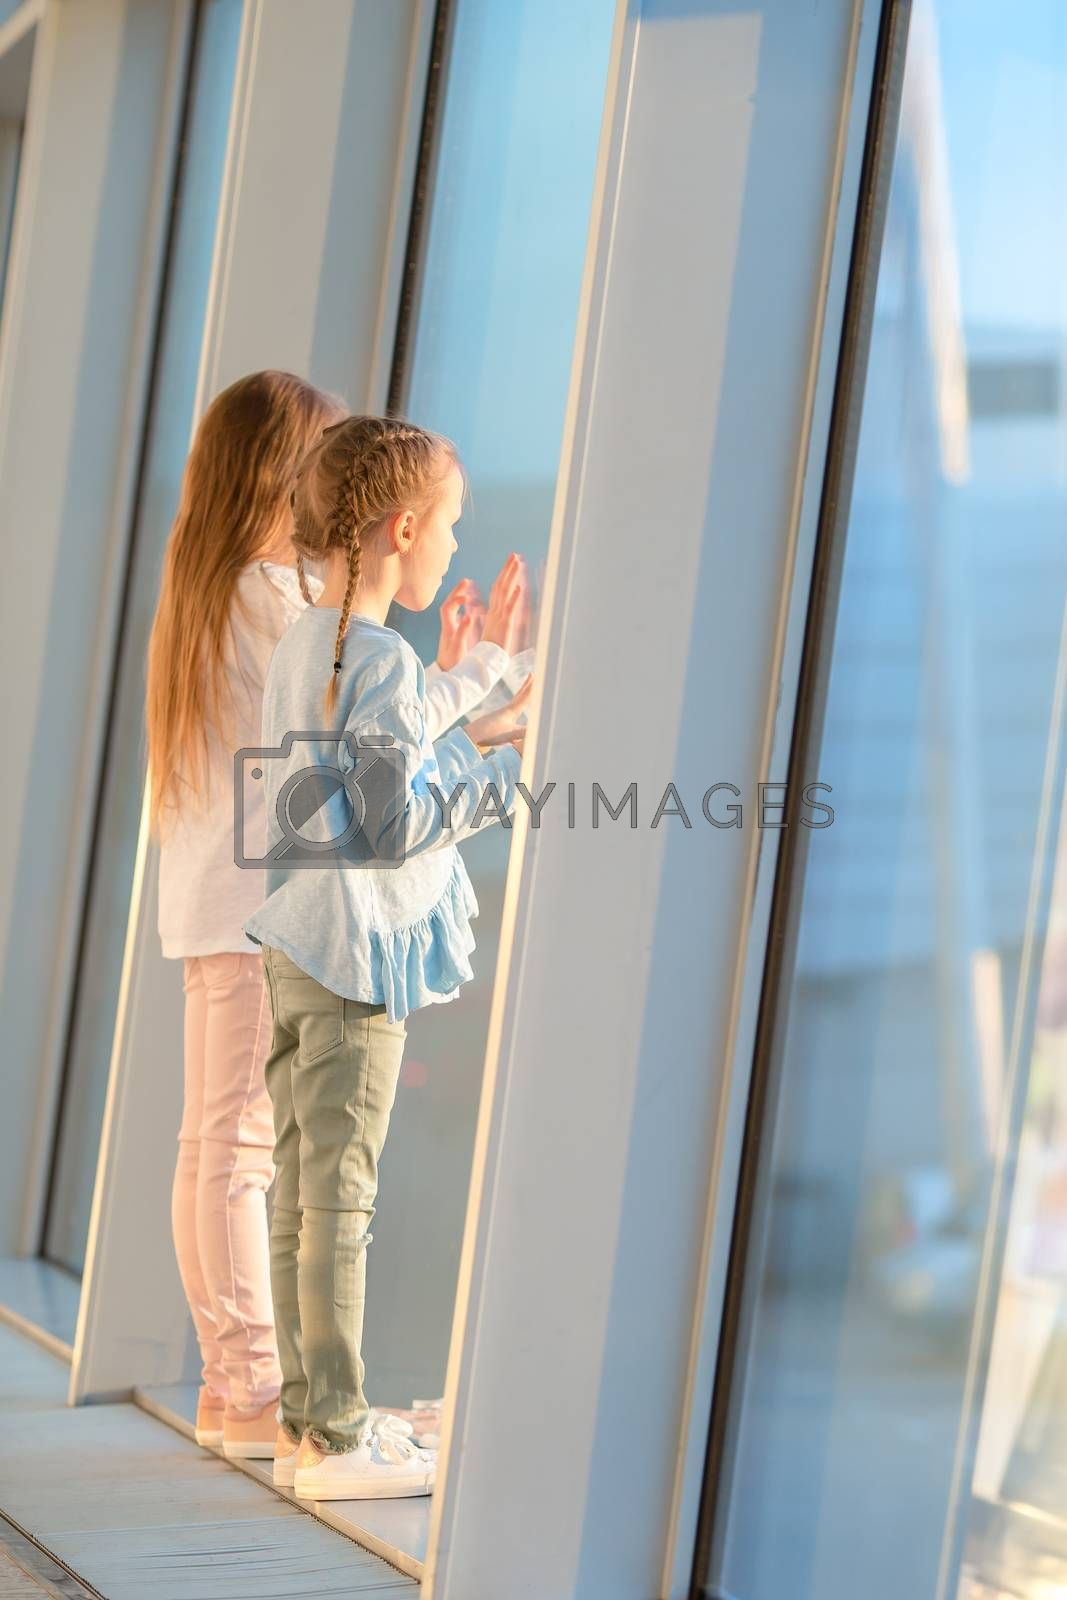 Little kids in airport waiting for boarding and looking at window on the planes